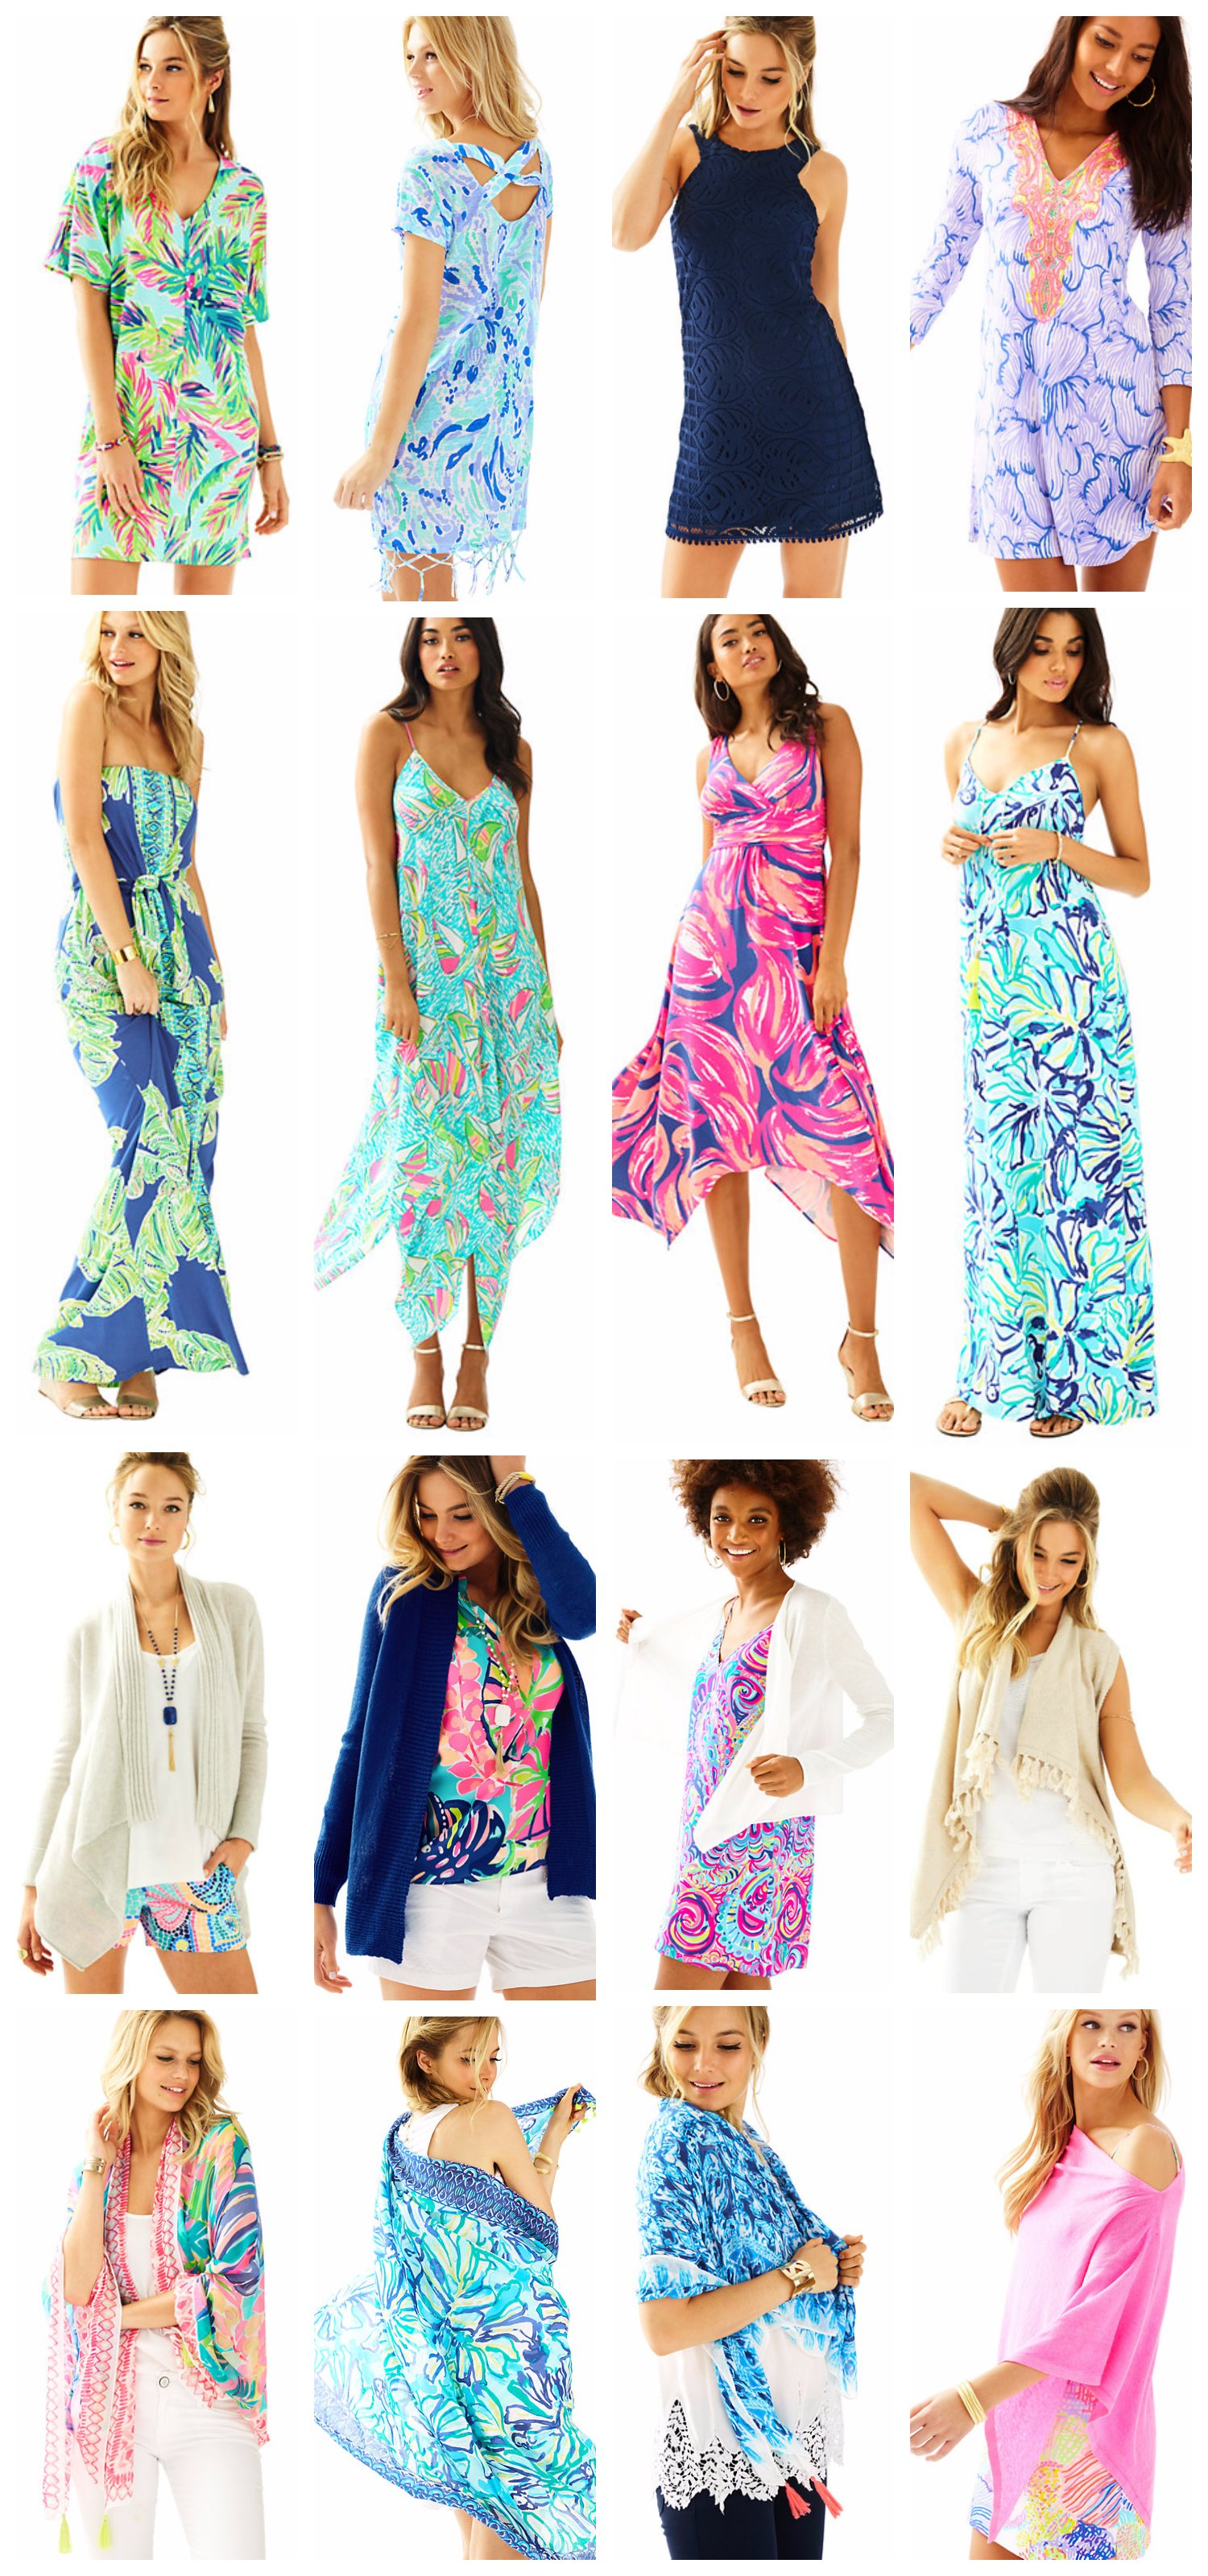 d90b18b14c896b Lilly Pulitzer New Releases Summer 2016 + After Party Sale Information by  style blogger Ashley Brooke